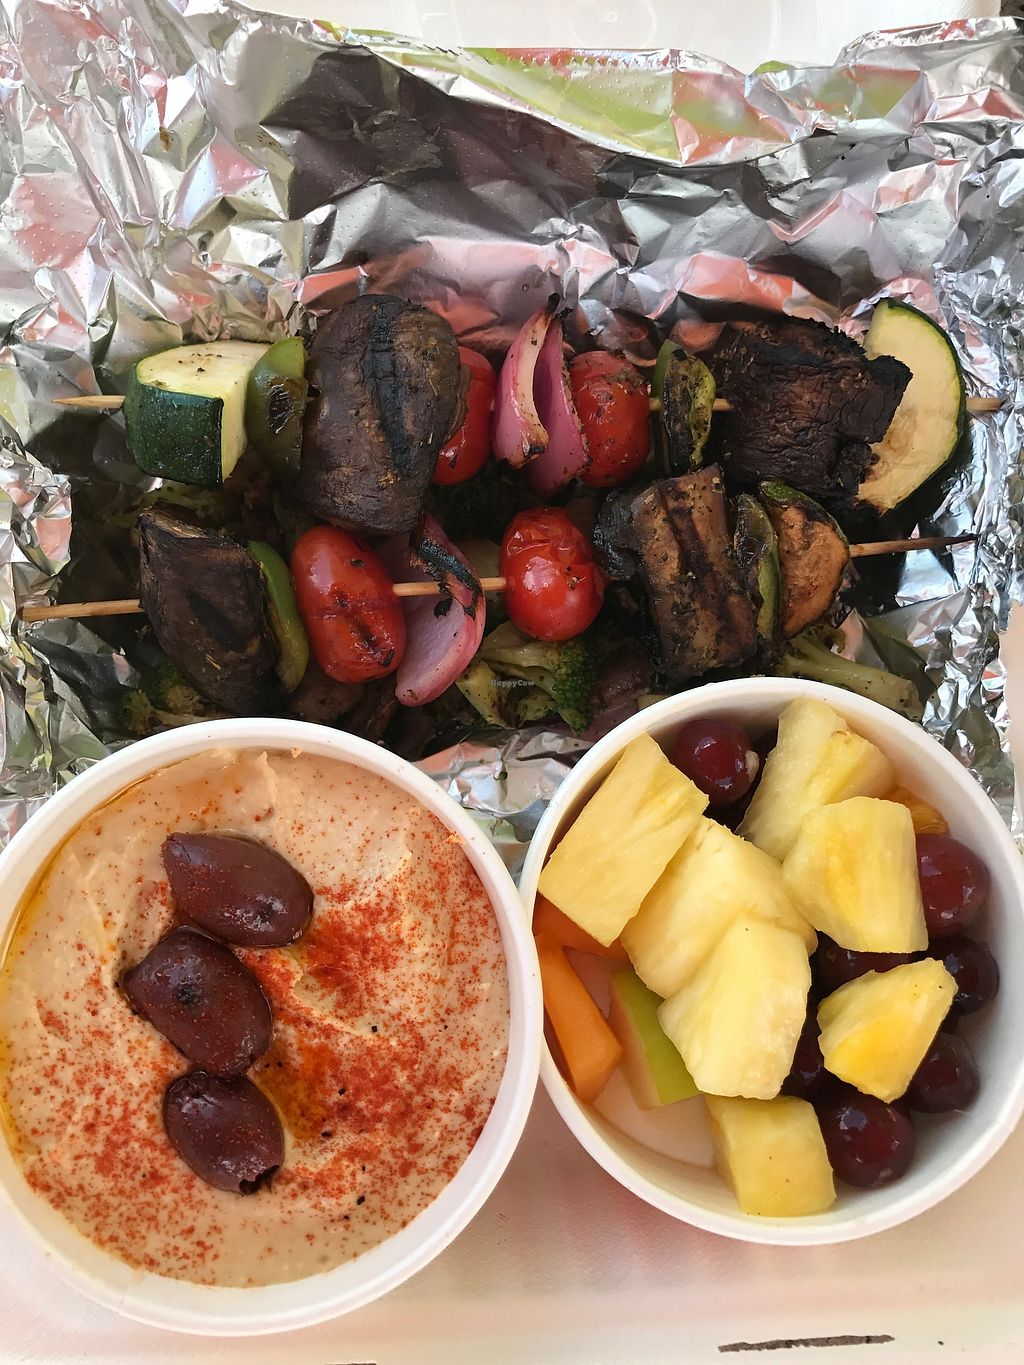 """Photo of Zoe's Kitchen  by <a href=""""/members/profile/melissapedroso"""">melissapedroso</a> <br/>Veggie kabobs humus and fruit <br/> July 12, 2017  - <a href='/contact/abuse/image/36235/279638'>Report</a>"""